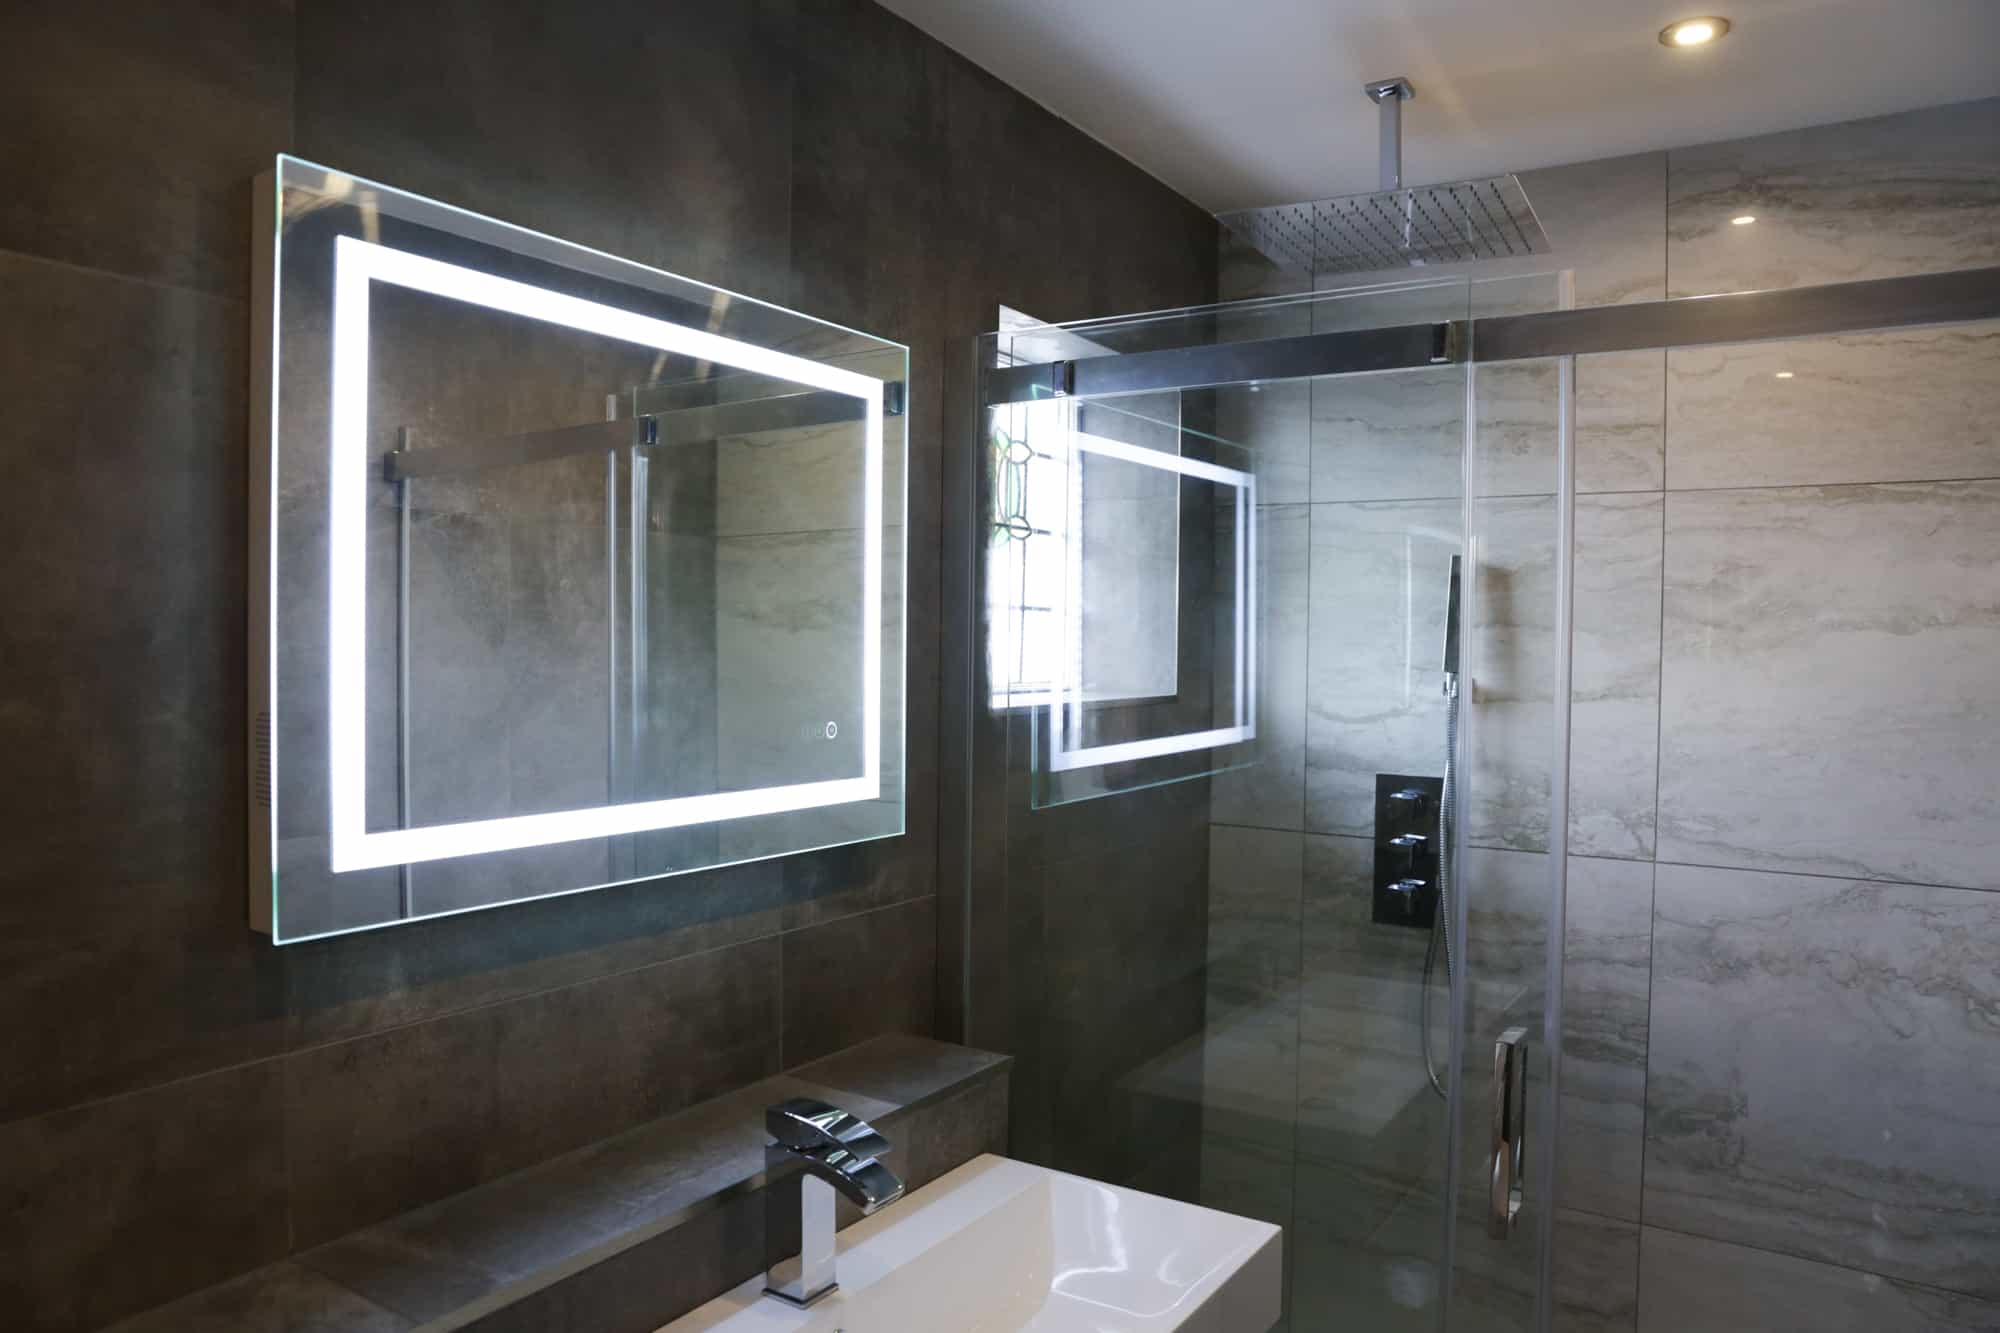 mirror, sink, shower in renovated bathroom by FIX LTD